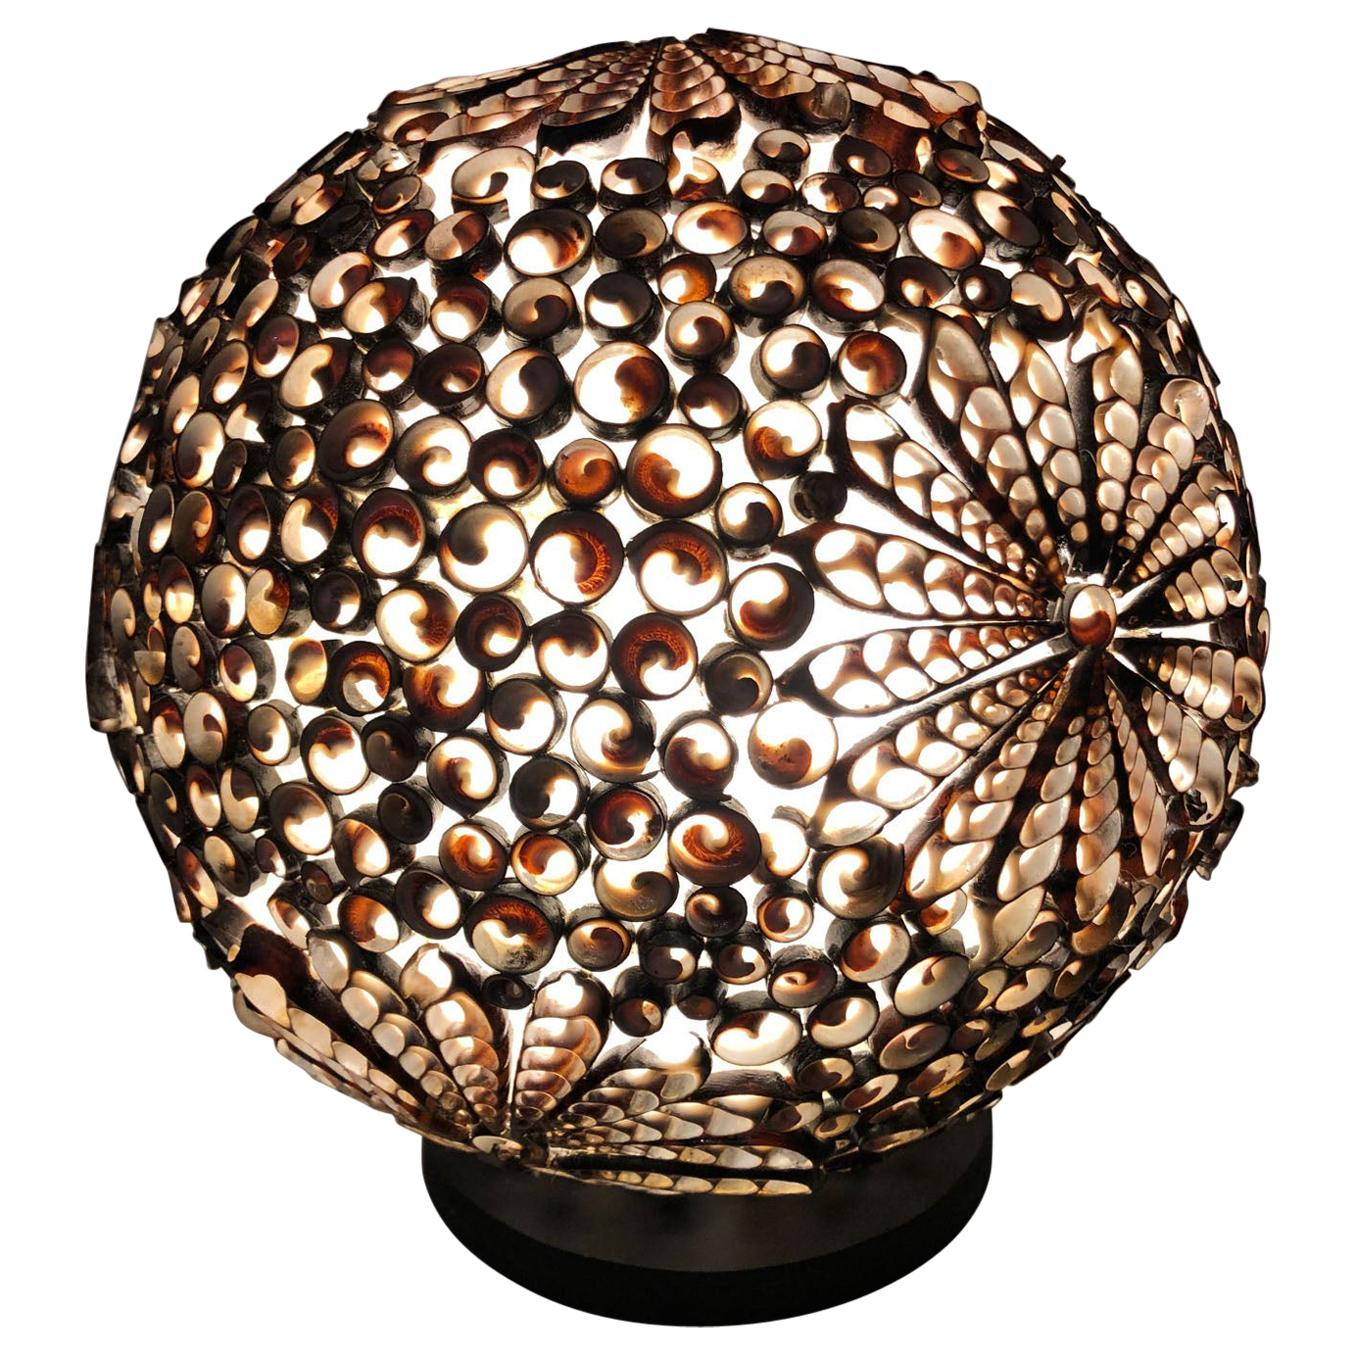 20th Century Table Lamp with Shells